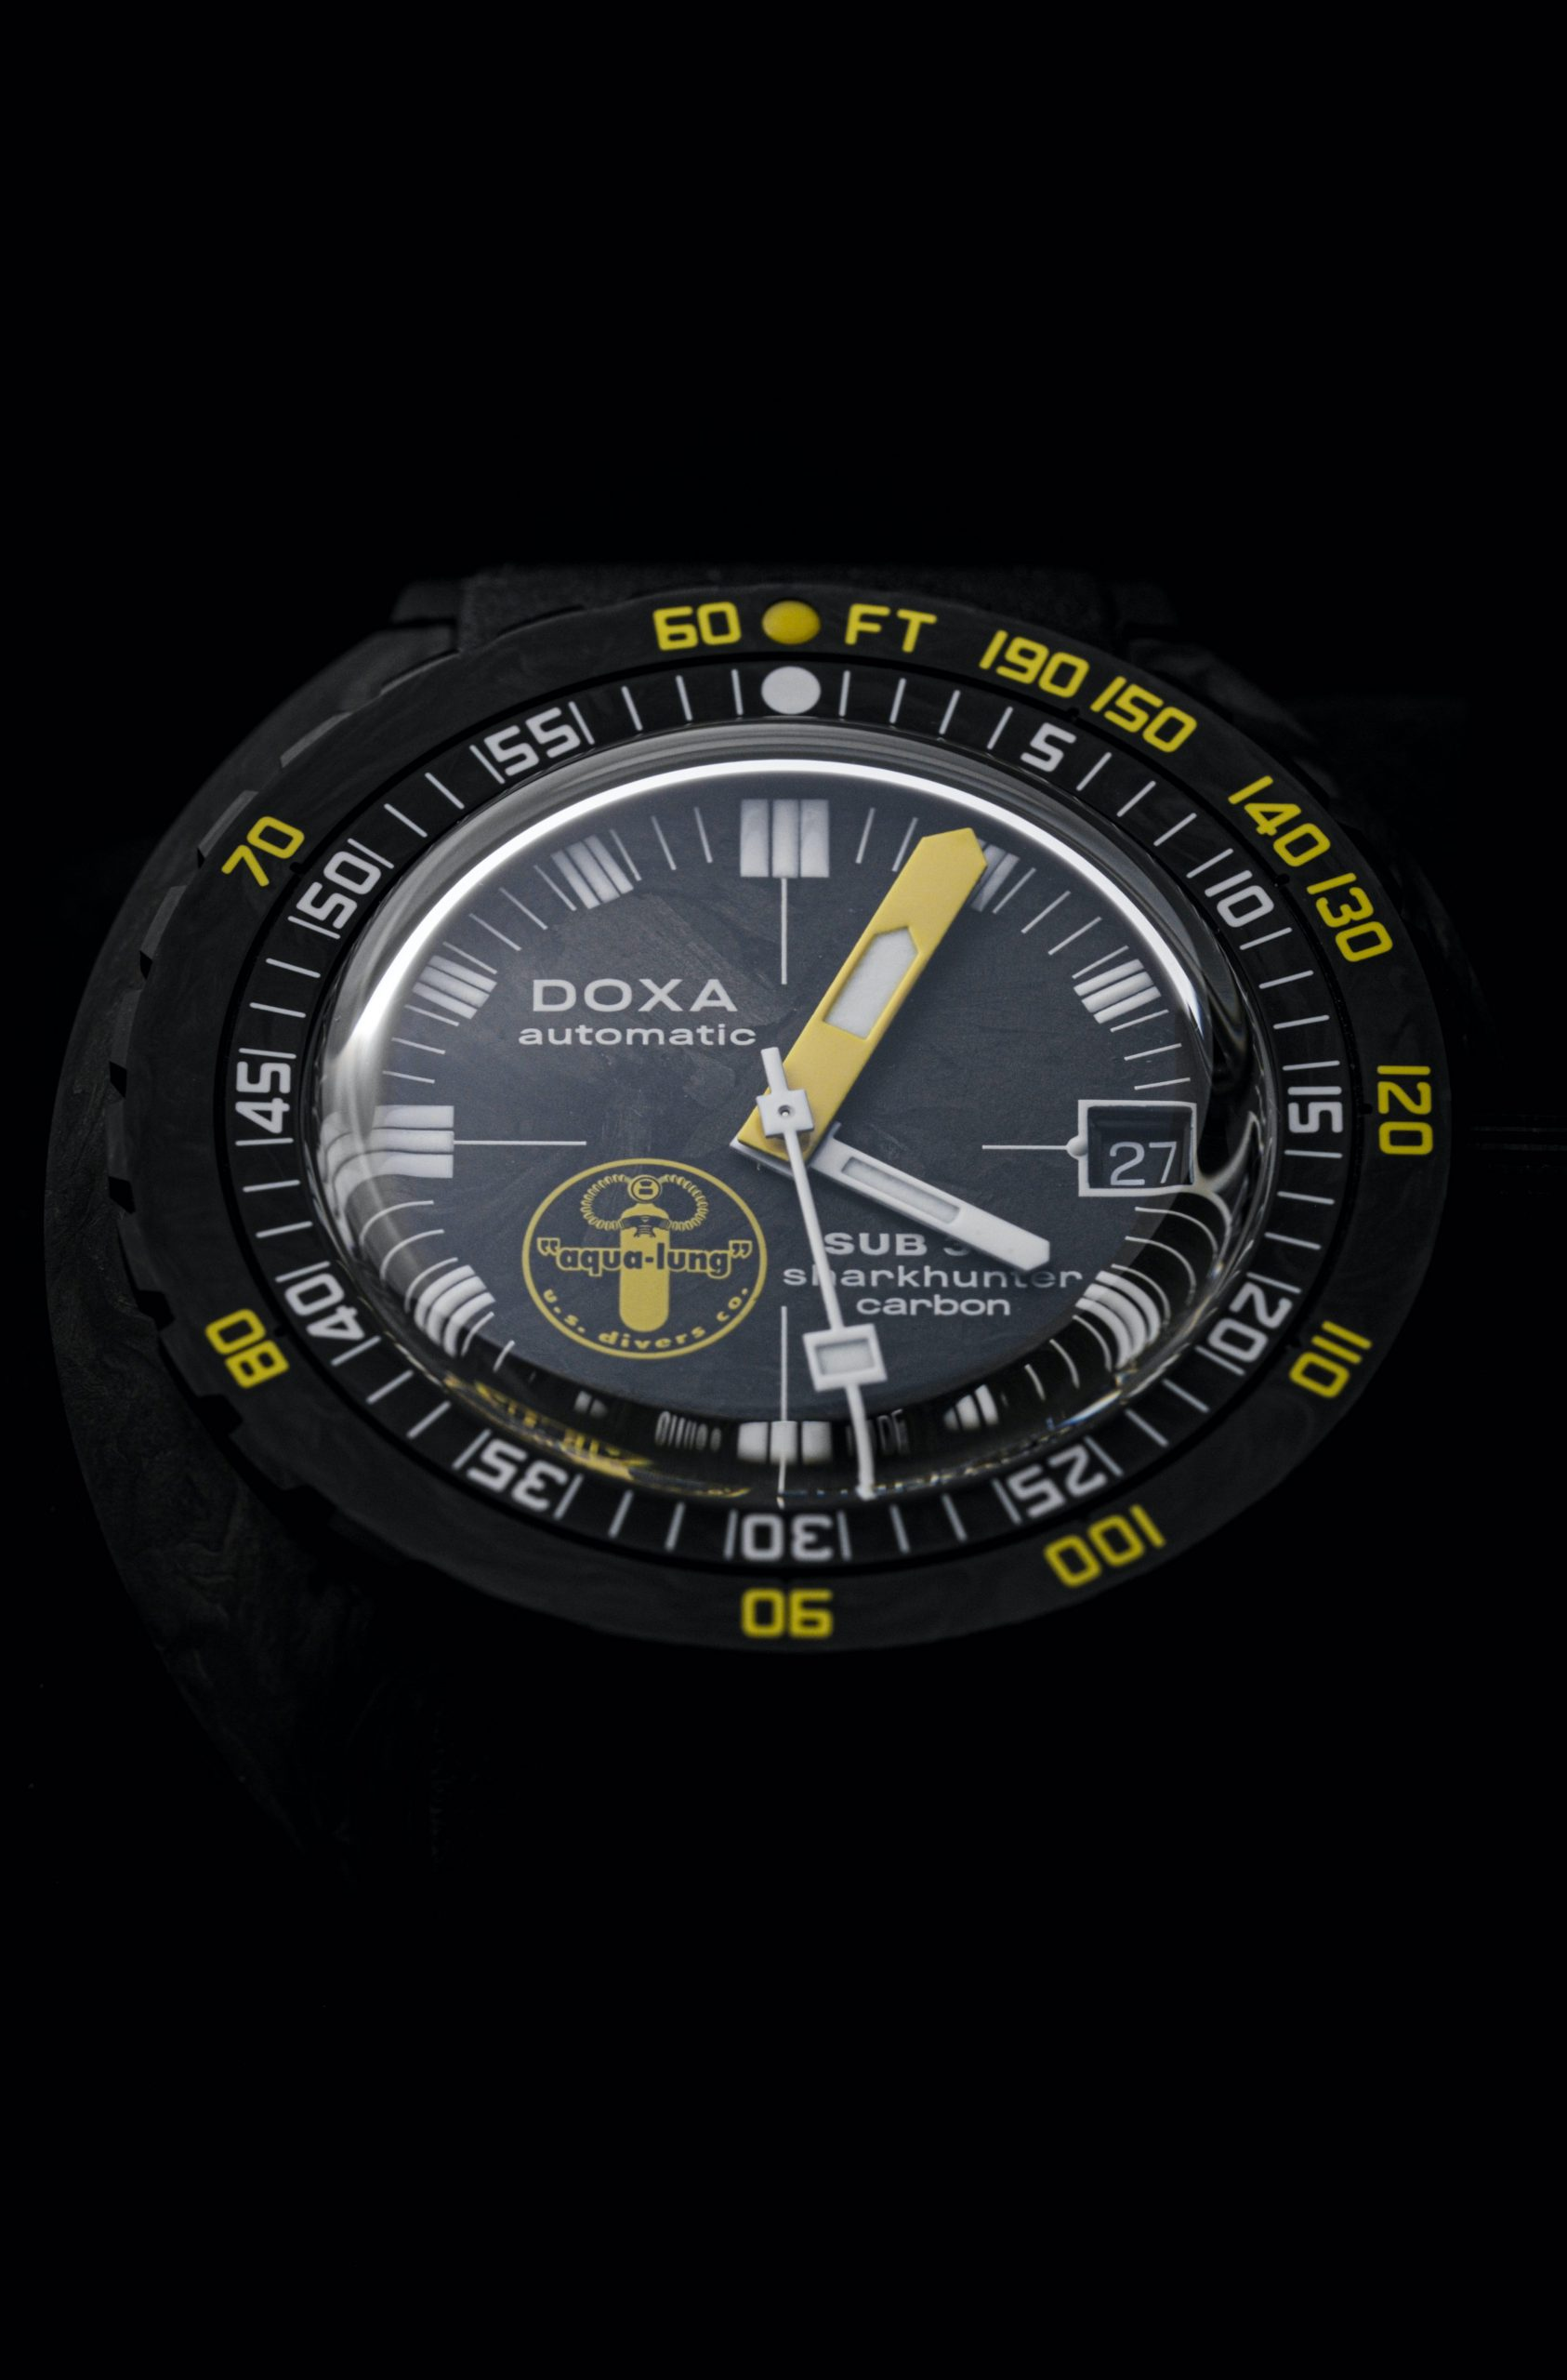 We made a tribute video to the baddest DOXA ever, which is about to sell out